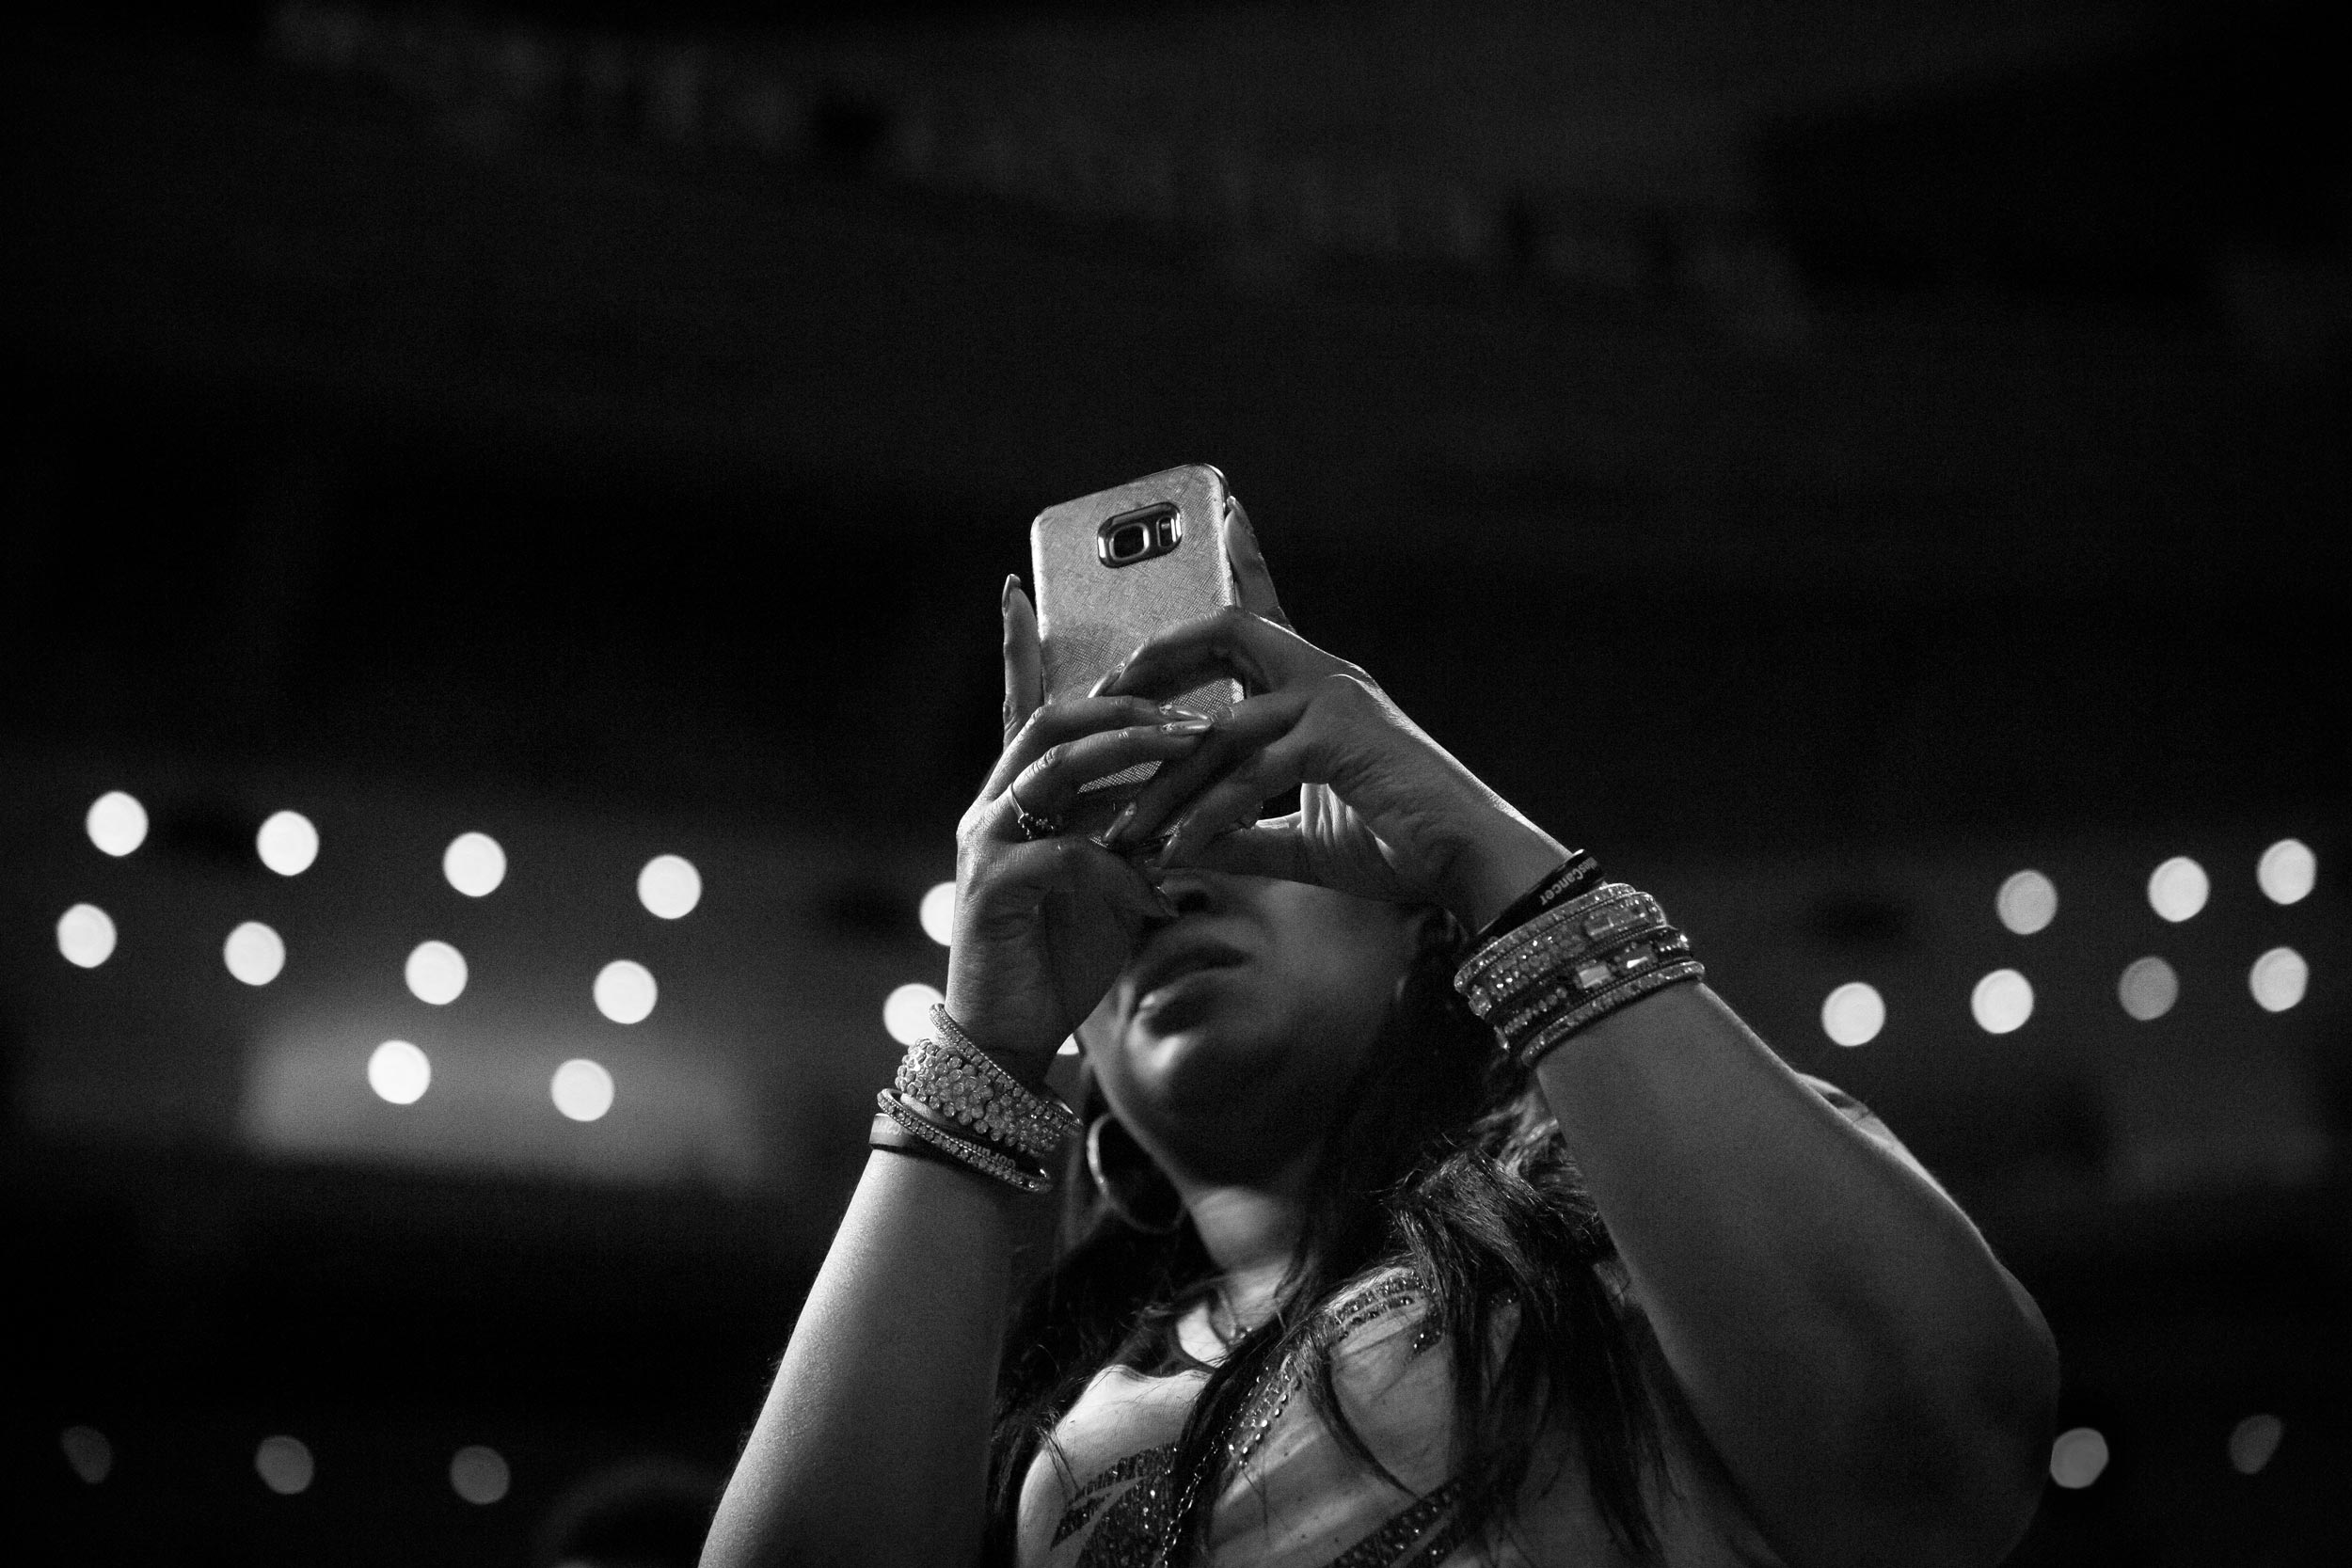 New Orleans Photojournalist and Editorial Photographer Edmund D. Fountain - NBA All-Star Game for ESPN